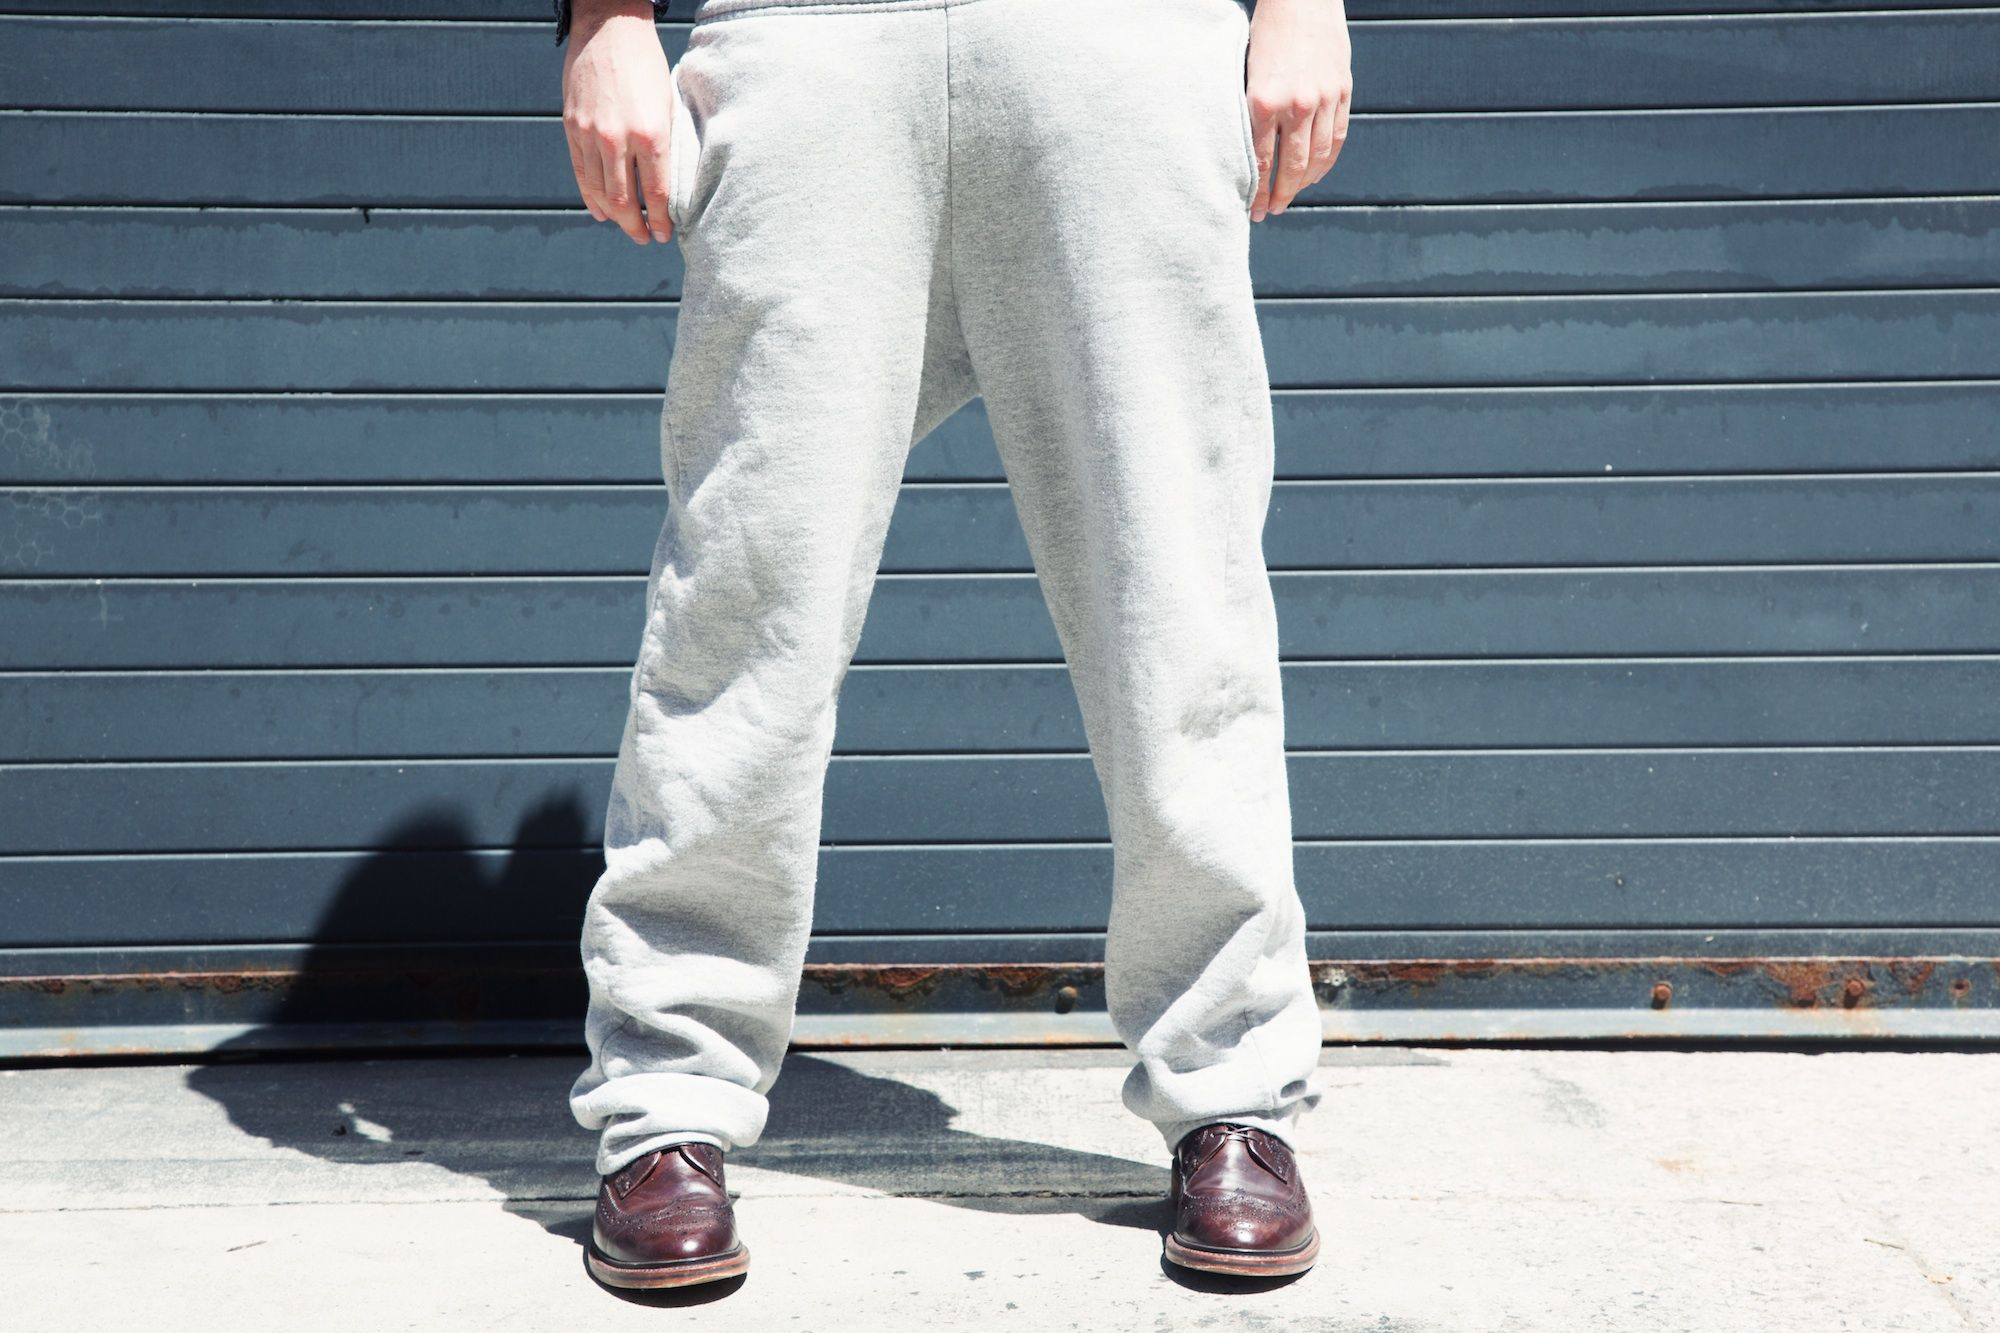 Formal Sweatpants Have Replaced Casual Sweatpants